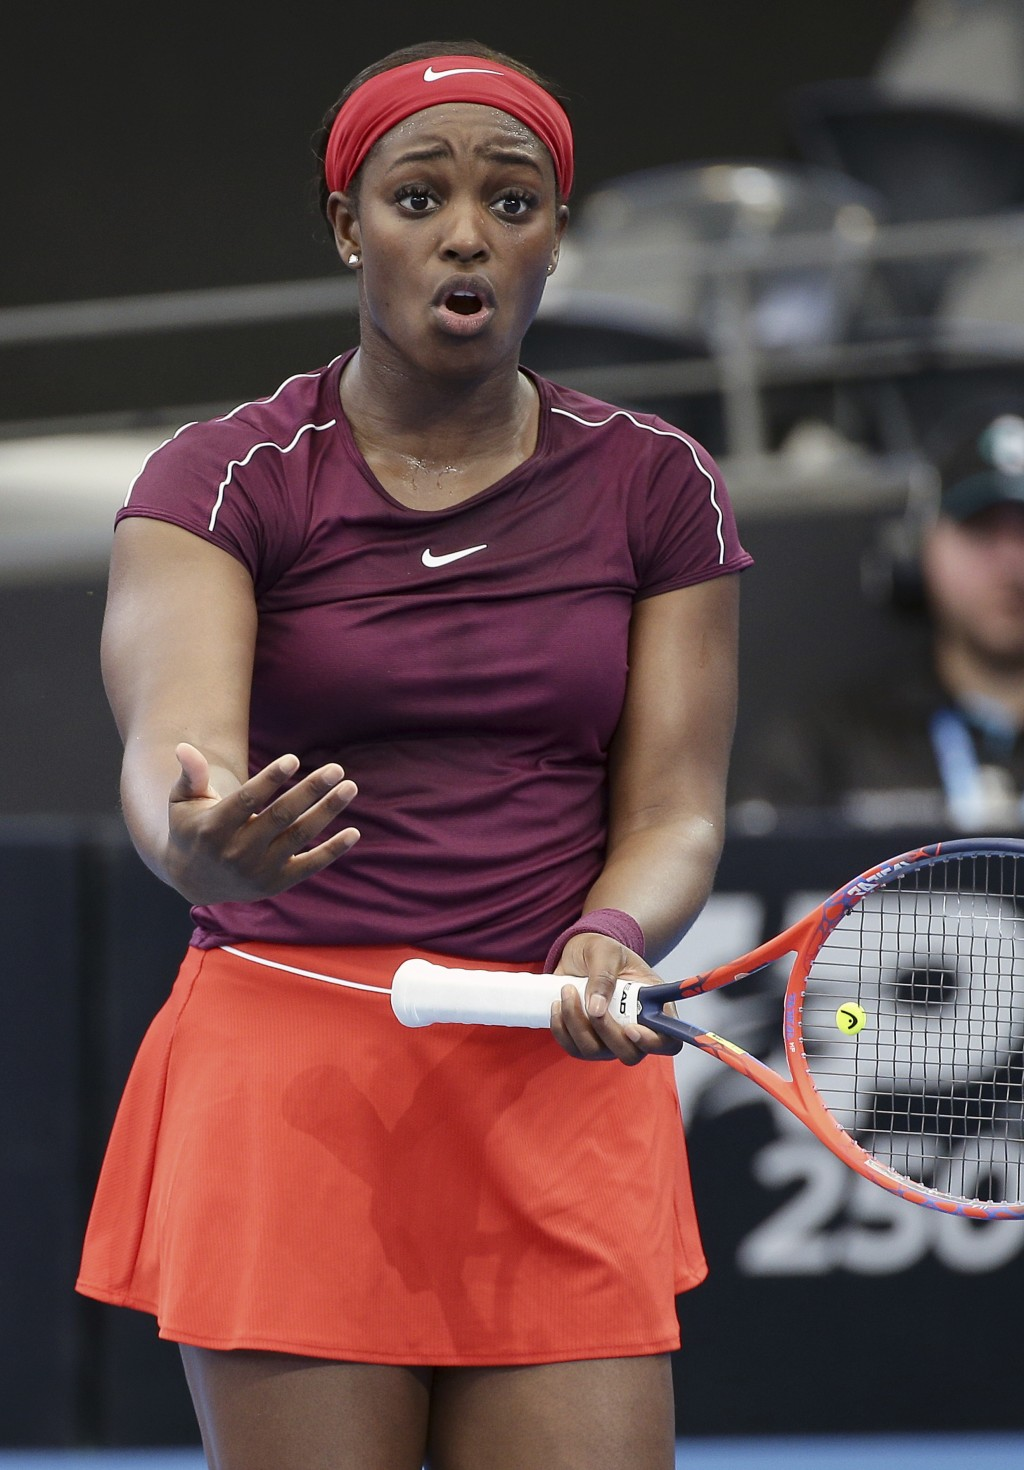 Sloane Stephens of the United States reacts after missing a shot during her match against Johanna Konta of Britain at the Brisbane International tenni...